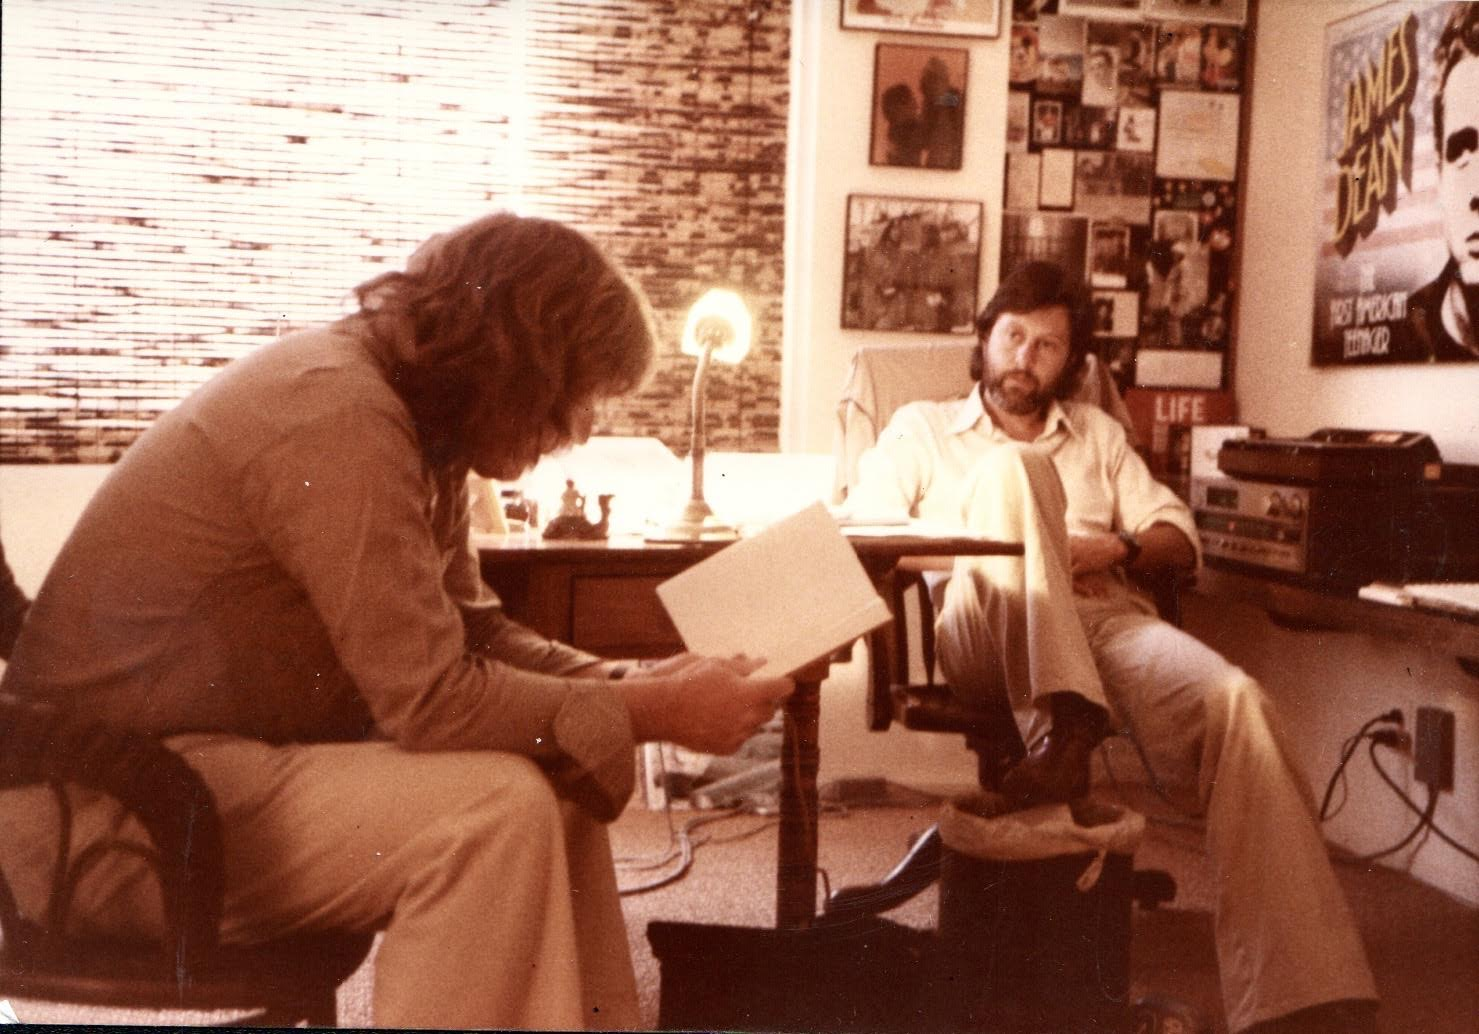 Lord Puttnam and Alan Parker at work in Hollywood